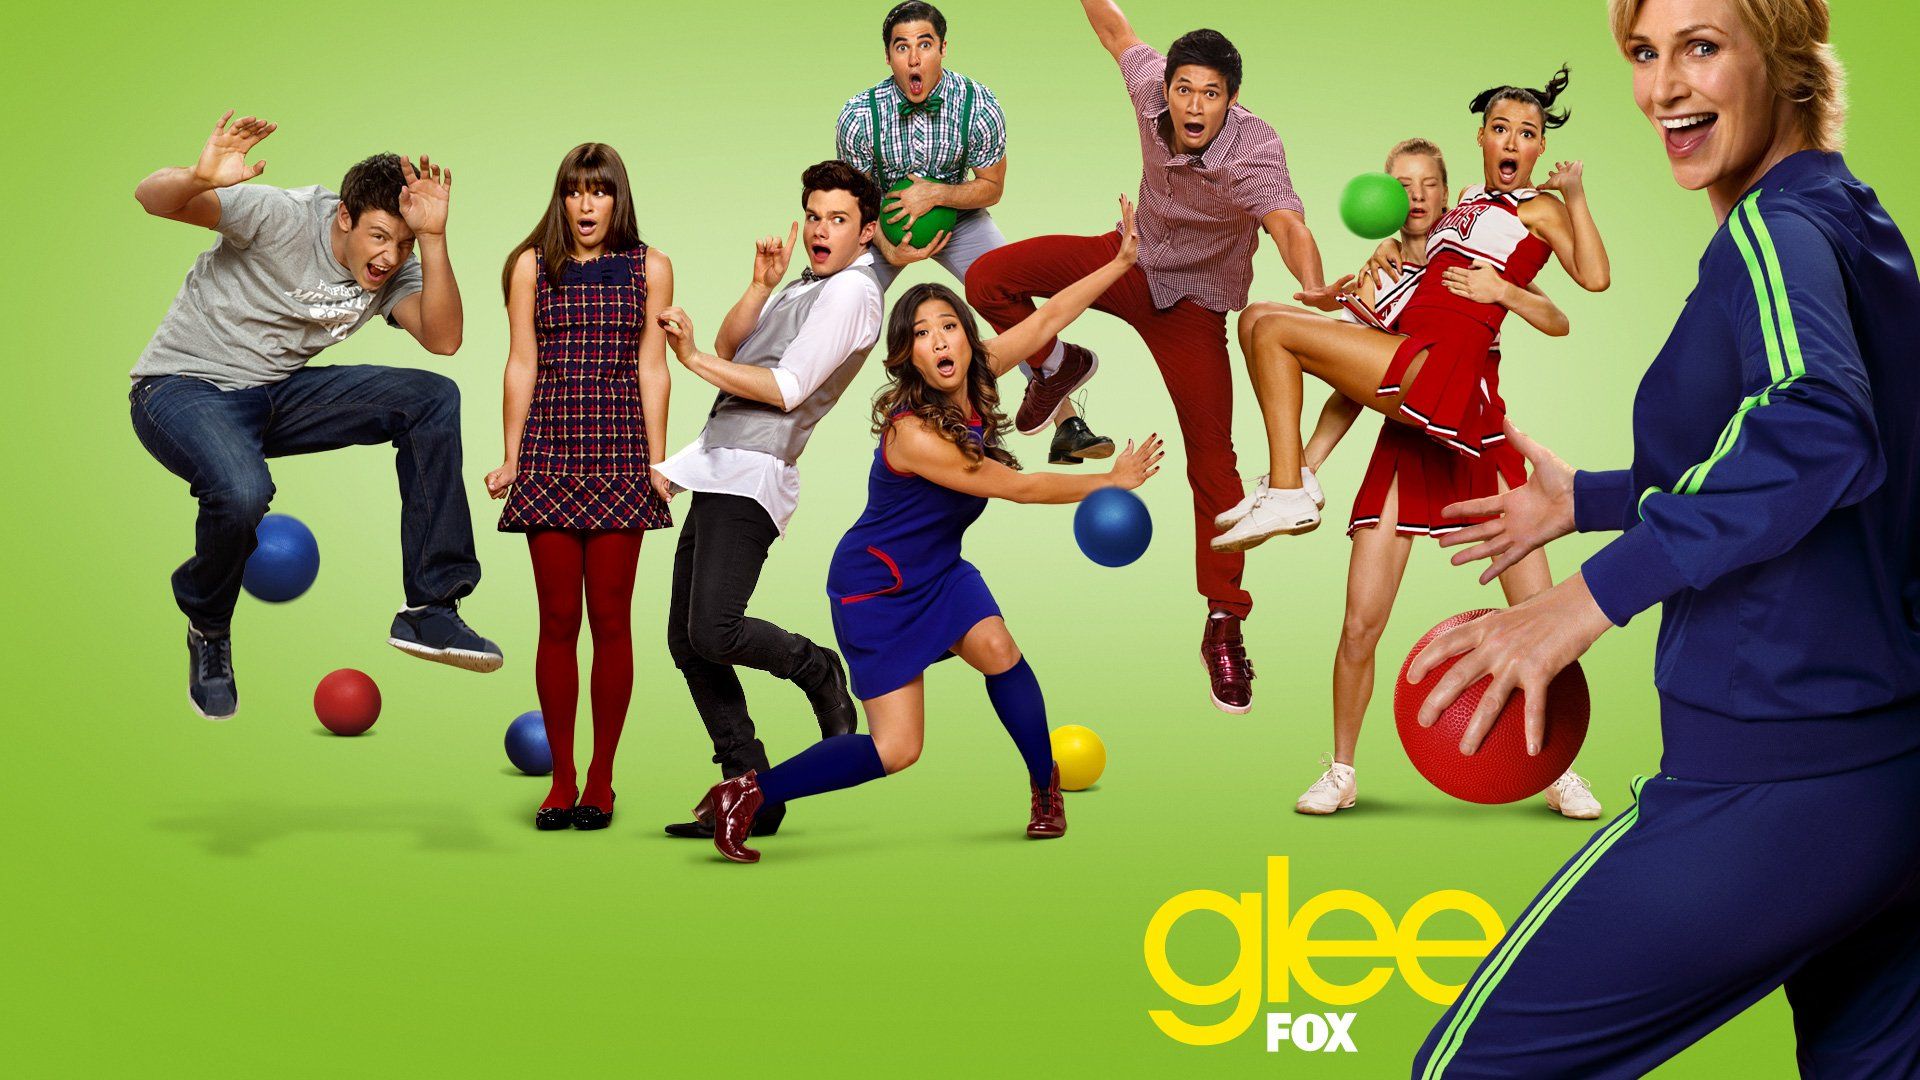 Glee full hd wallpaper and background image 1920x1080 id316414 tv show glee cory monteith finn hudson jane lynch sue sylvester lea michele rachel berry voltagebd